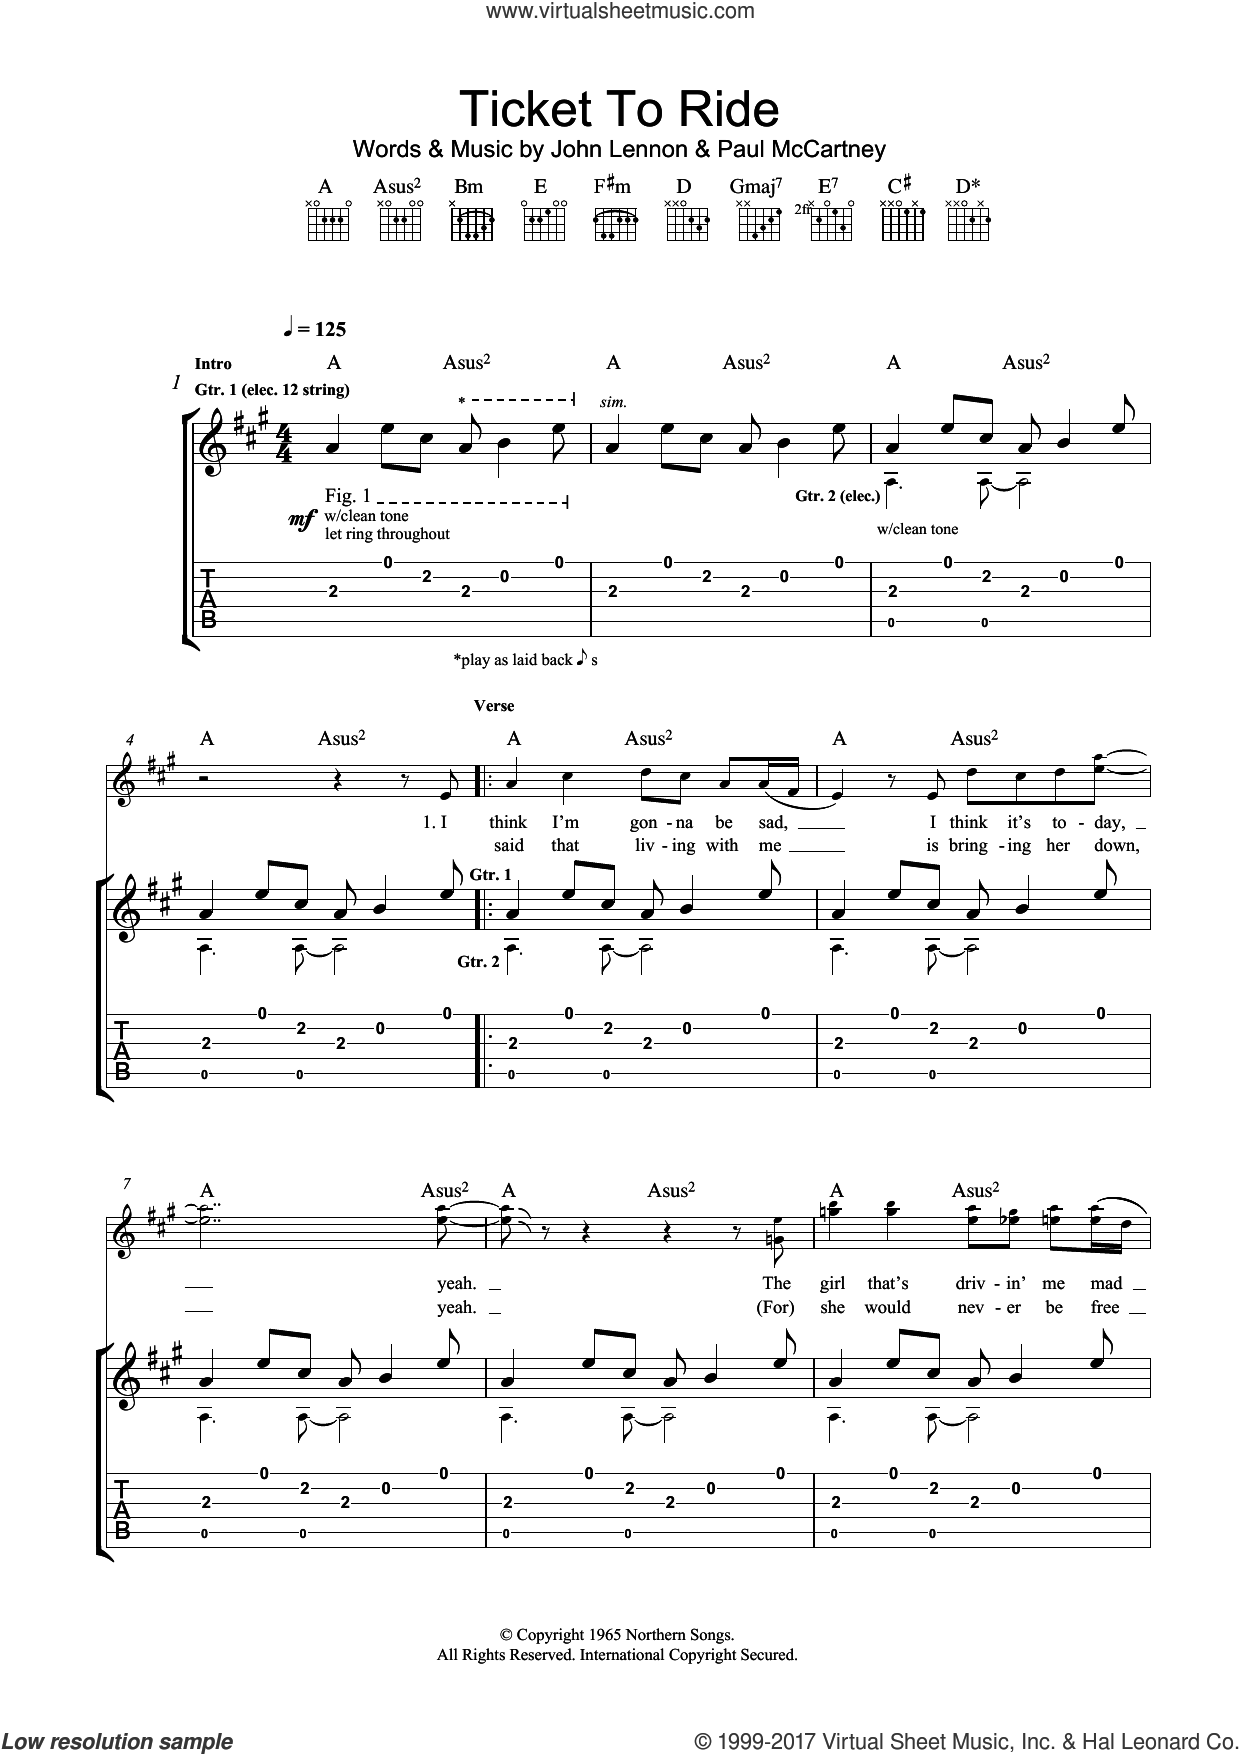 Ticket To Ride sheet music for guitar (tablature) by The Beatles, John Lennon and Paul McCartney, intermediate skill level